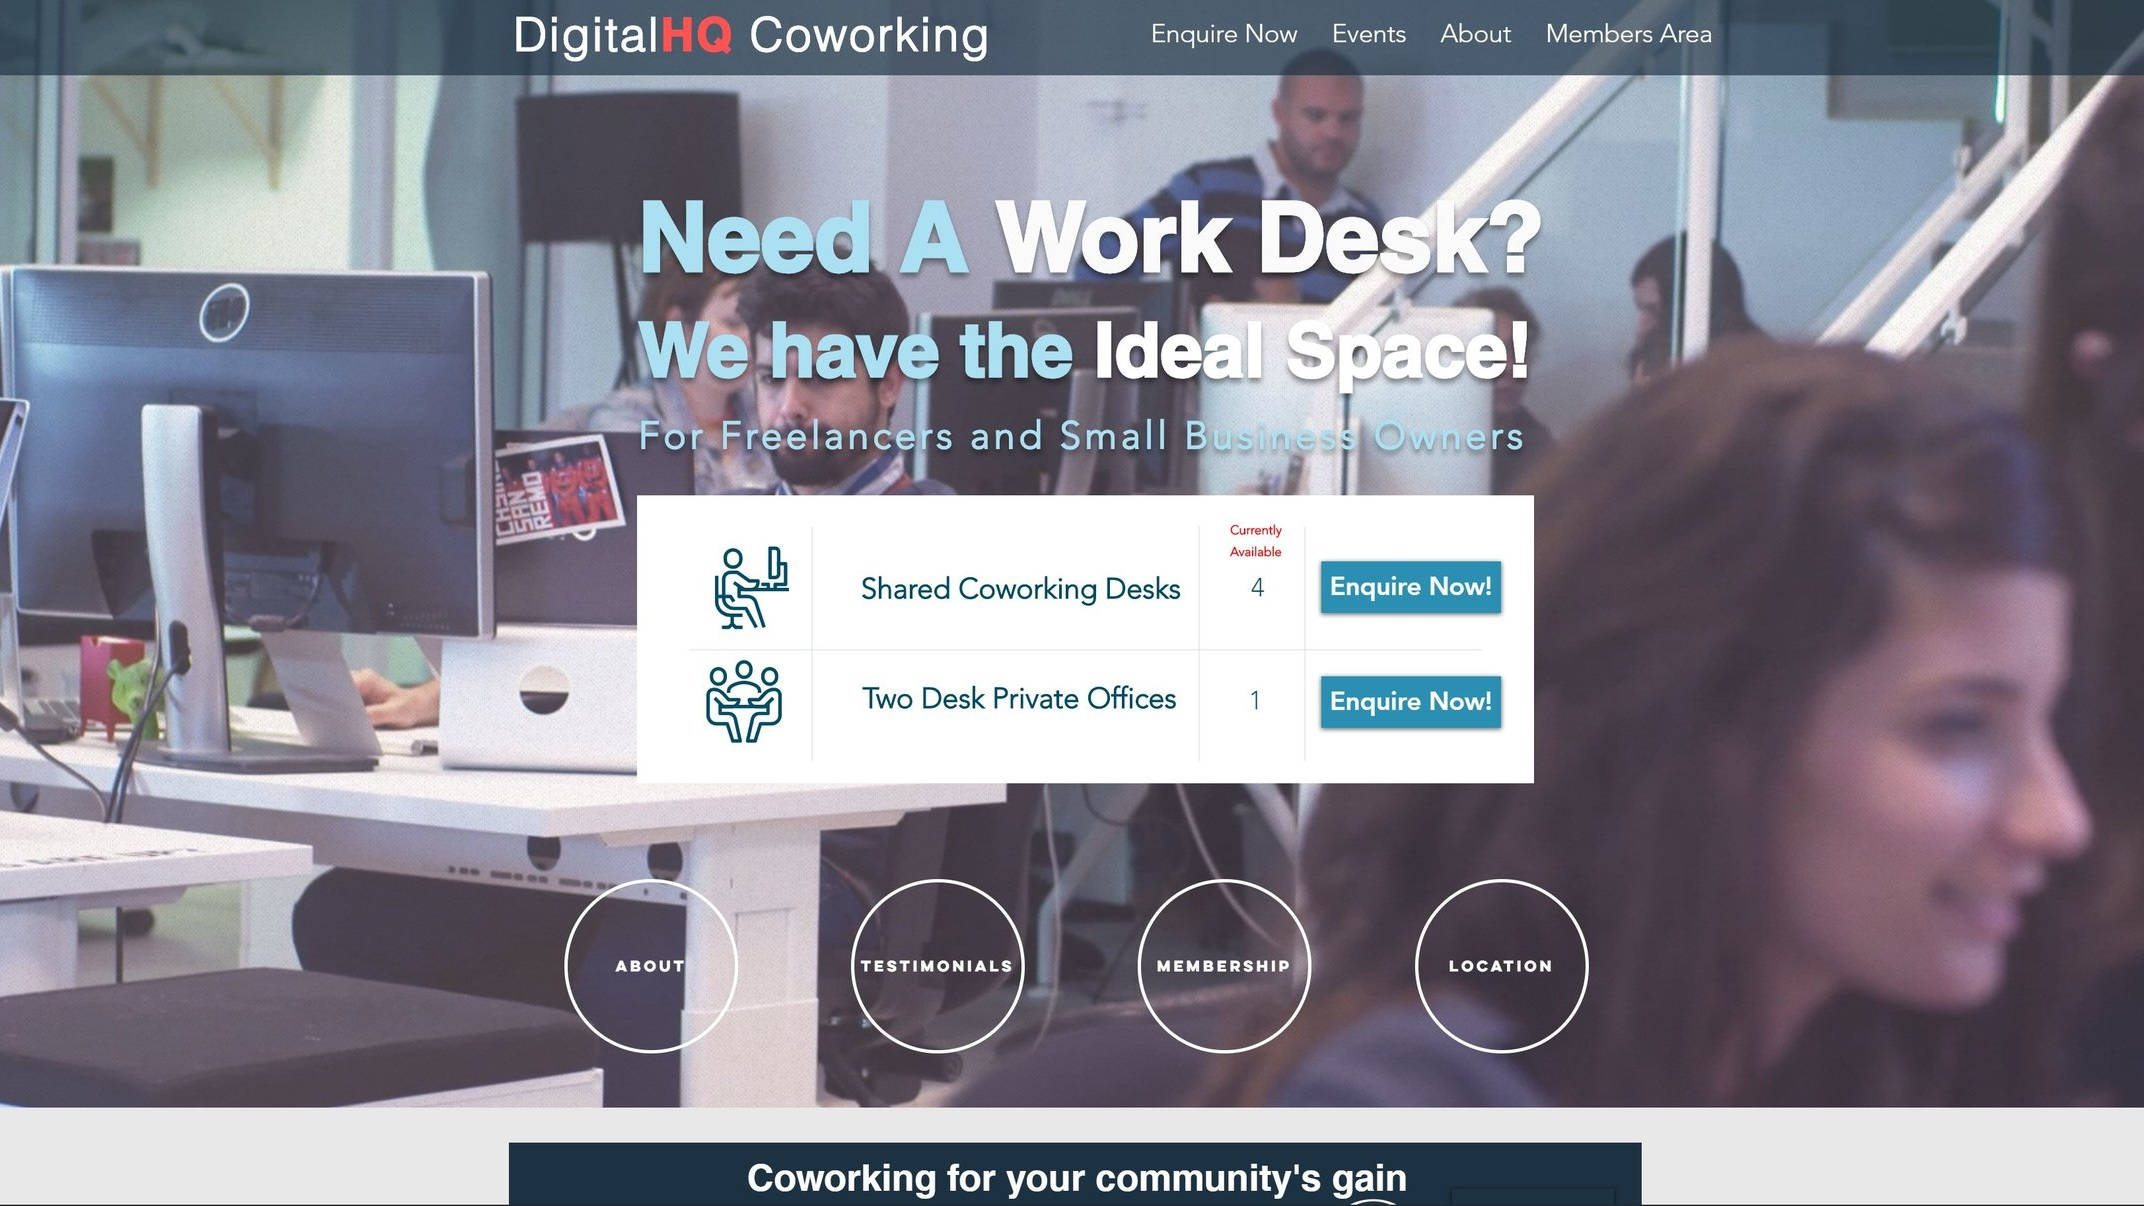 DigitalHQ  is Based above Bank of Ireland in the heart of Dún Laoghaire Town. It is an ideal place for small businesses that want to grow, with top class public transport, food, entertainment all on our doorstep.  Quick Contact:  +353 (0) 87 737 6622 pierconnect@digitalhq.ie